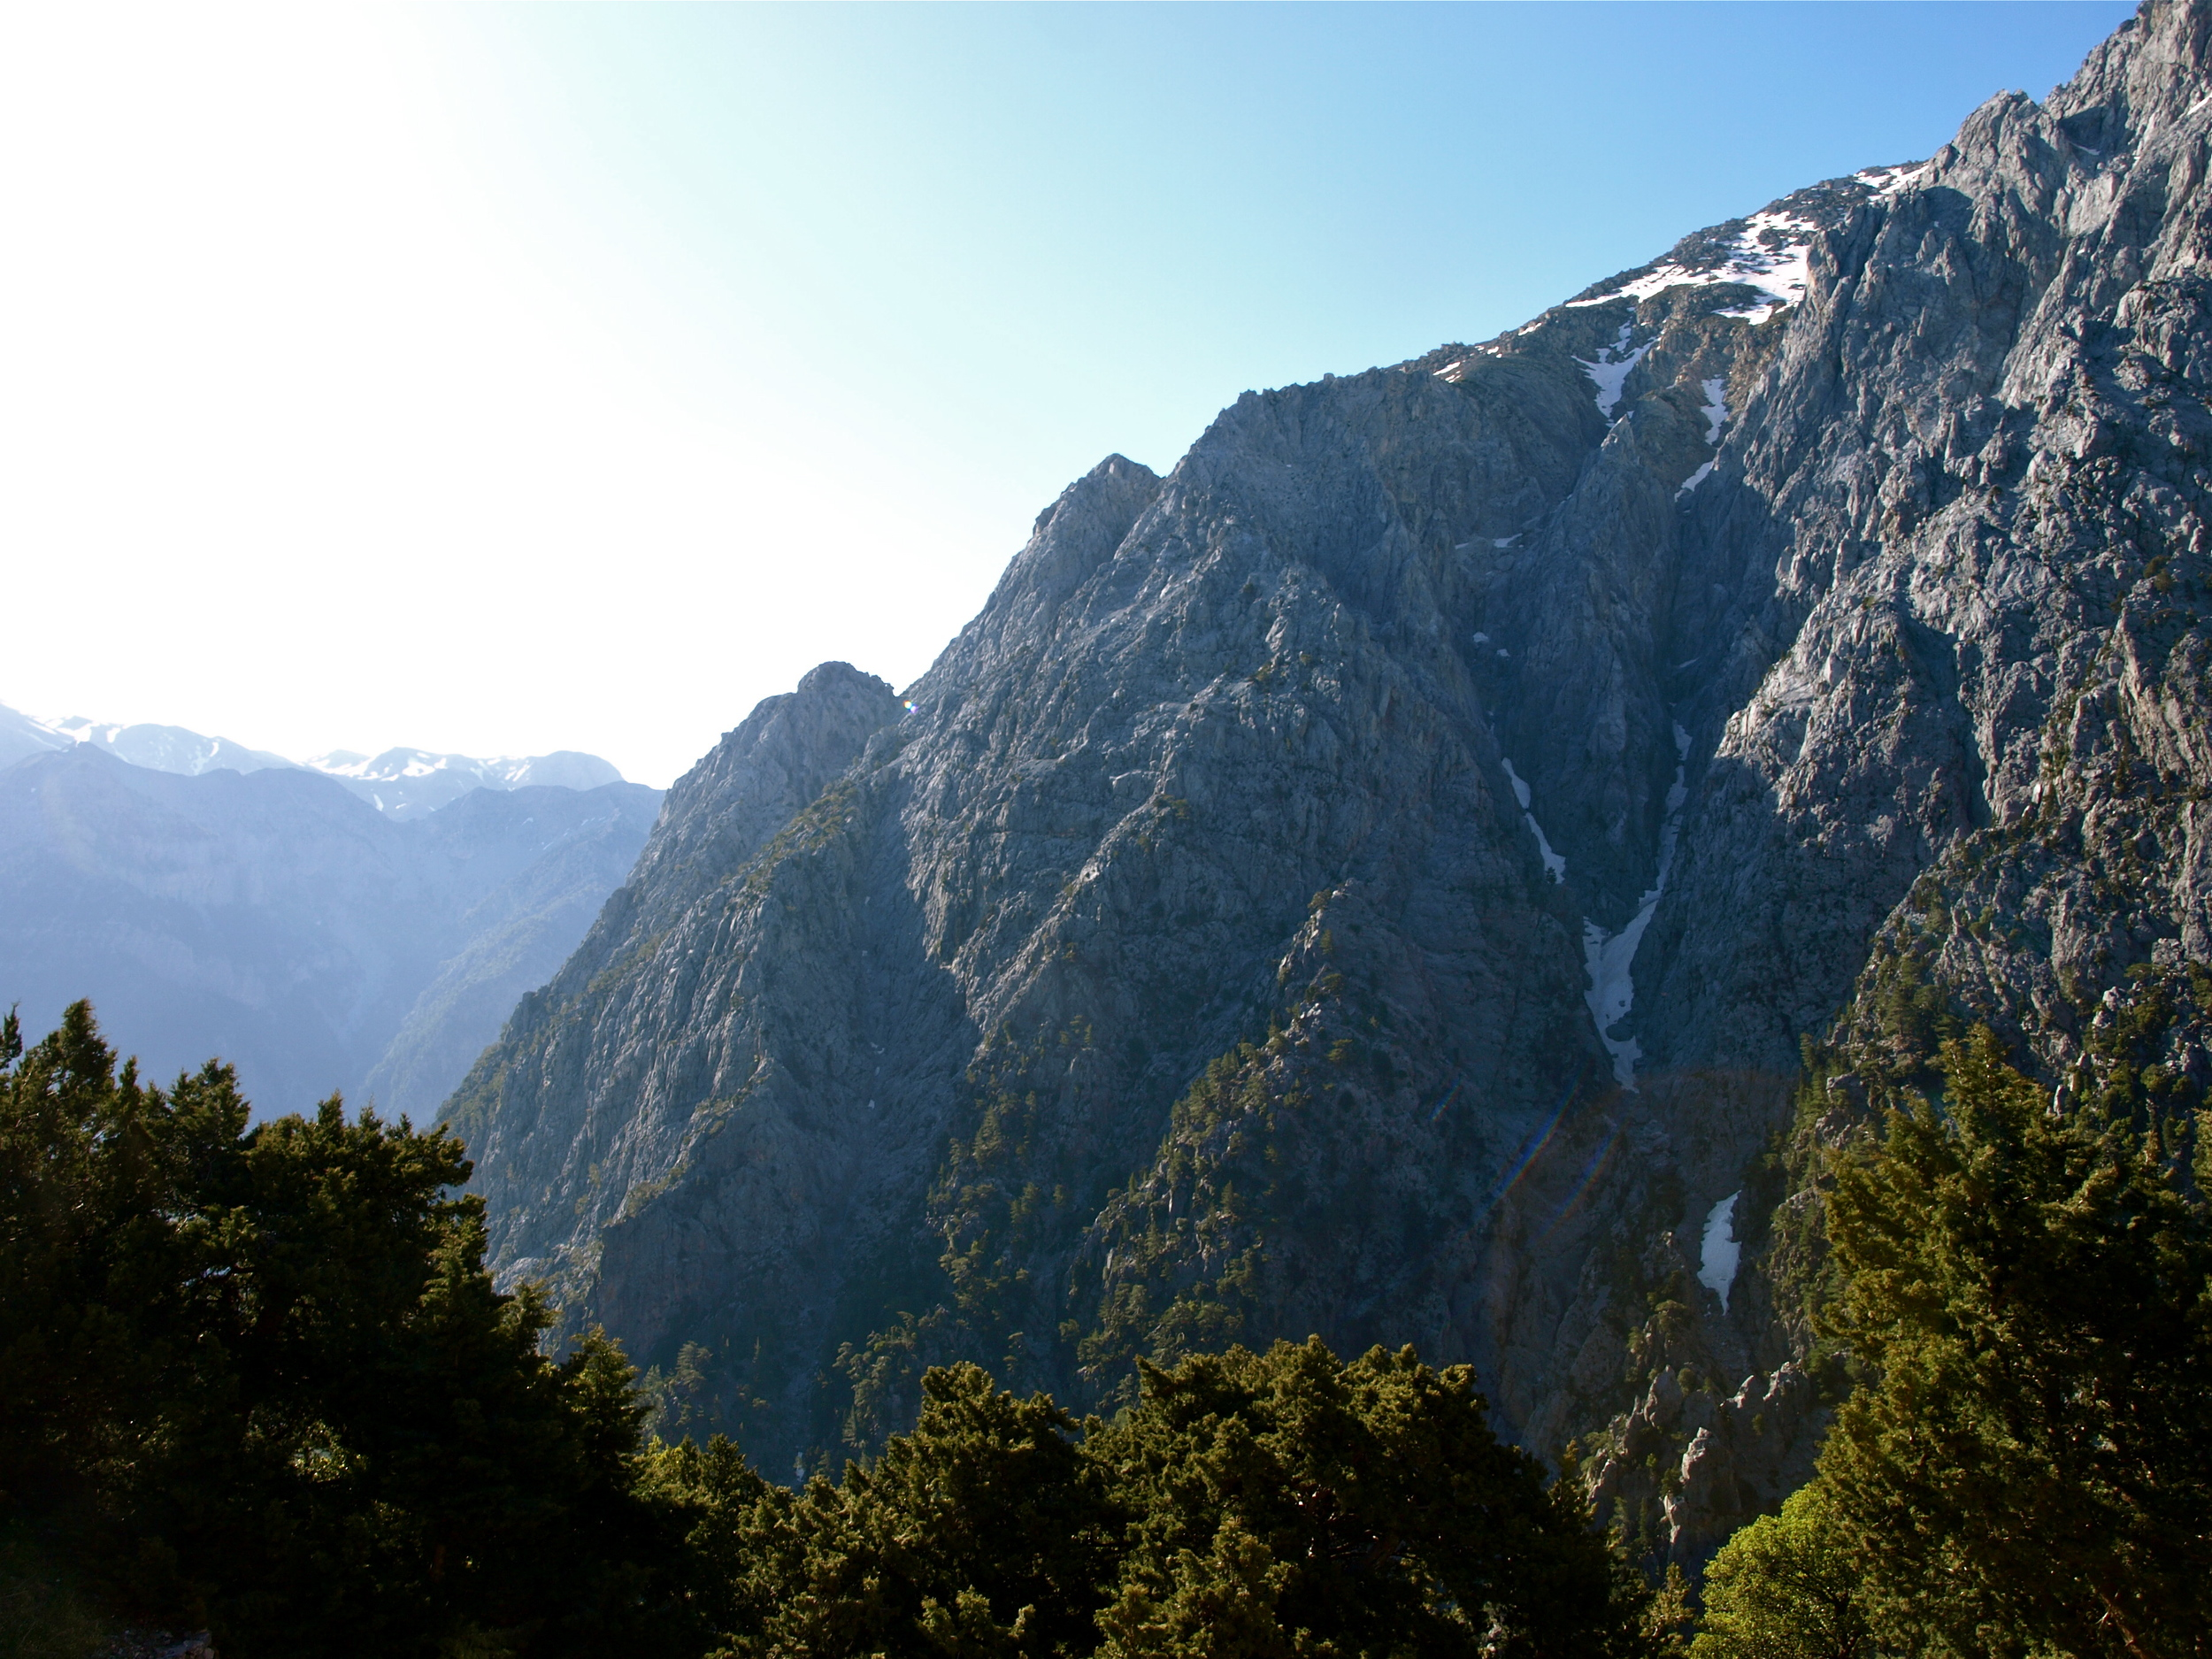 The dramatic start of the Samaria Gorge trail (Picture by Katherine Poseidon)